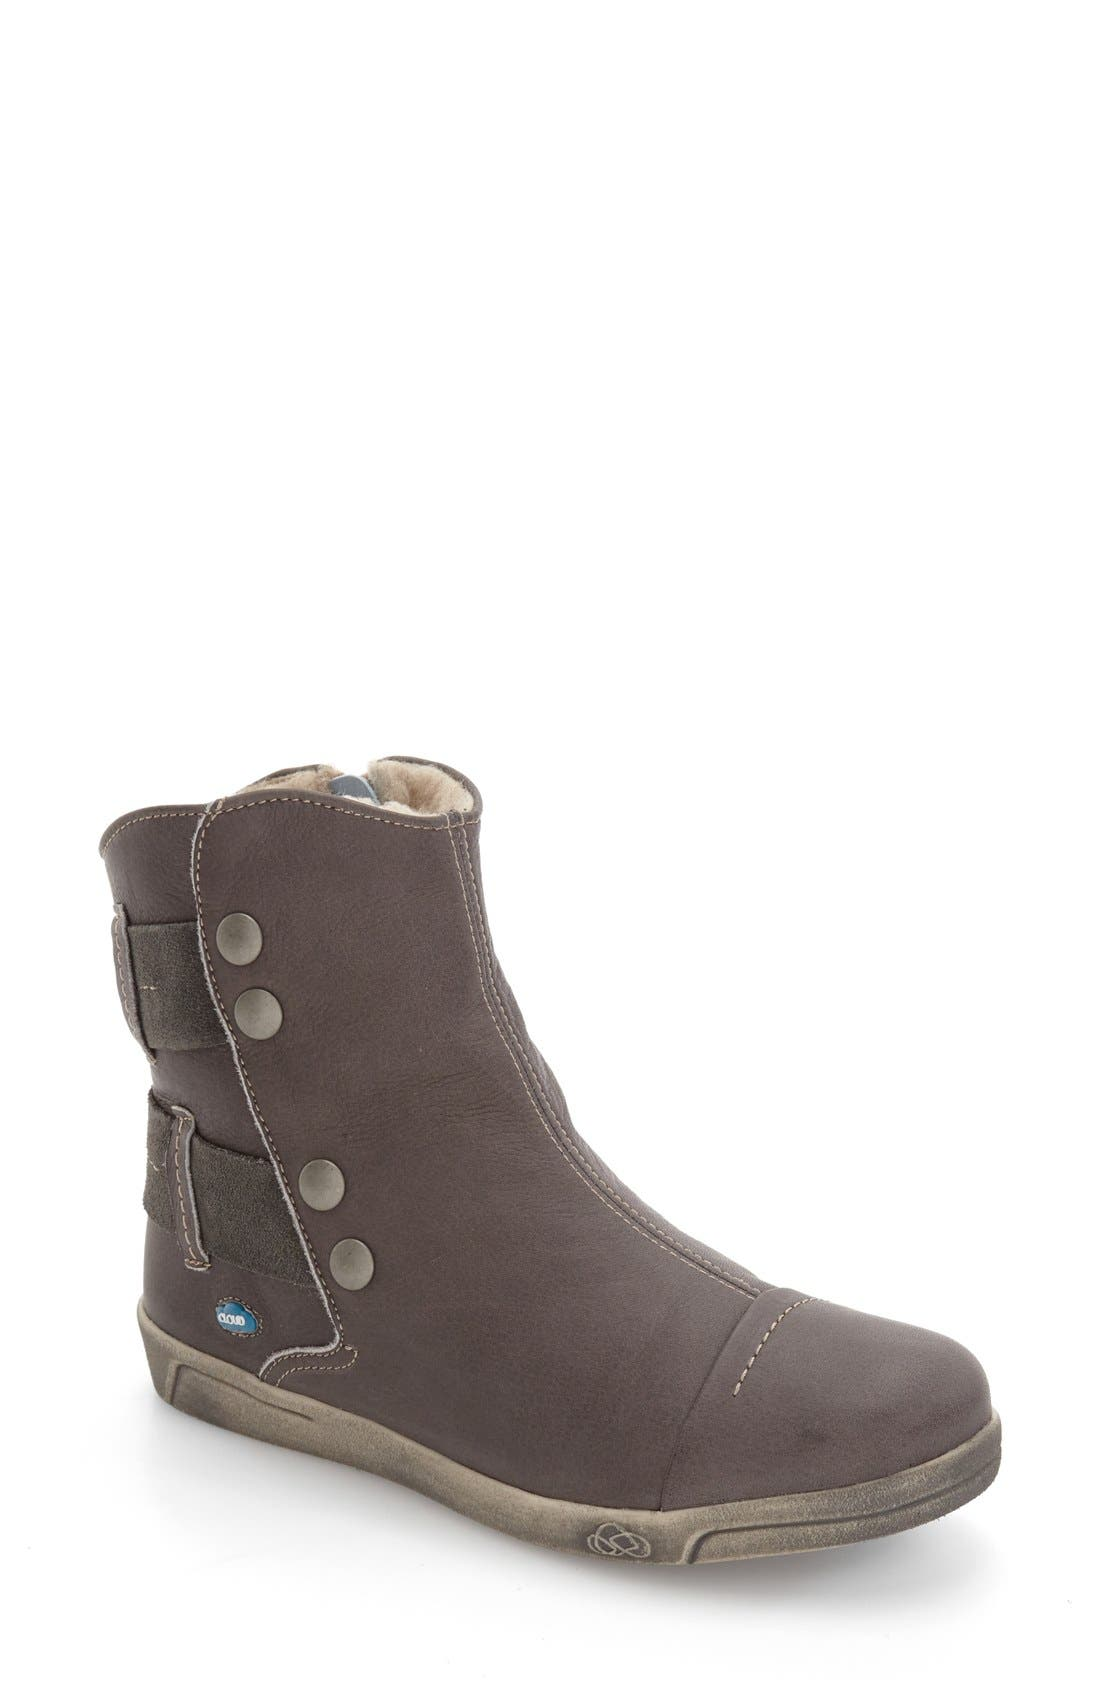 'Aline' Faux Shearling Lined Bootie,                         Main,                         color, Dark Grey Leather